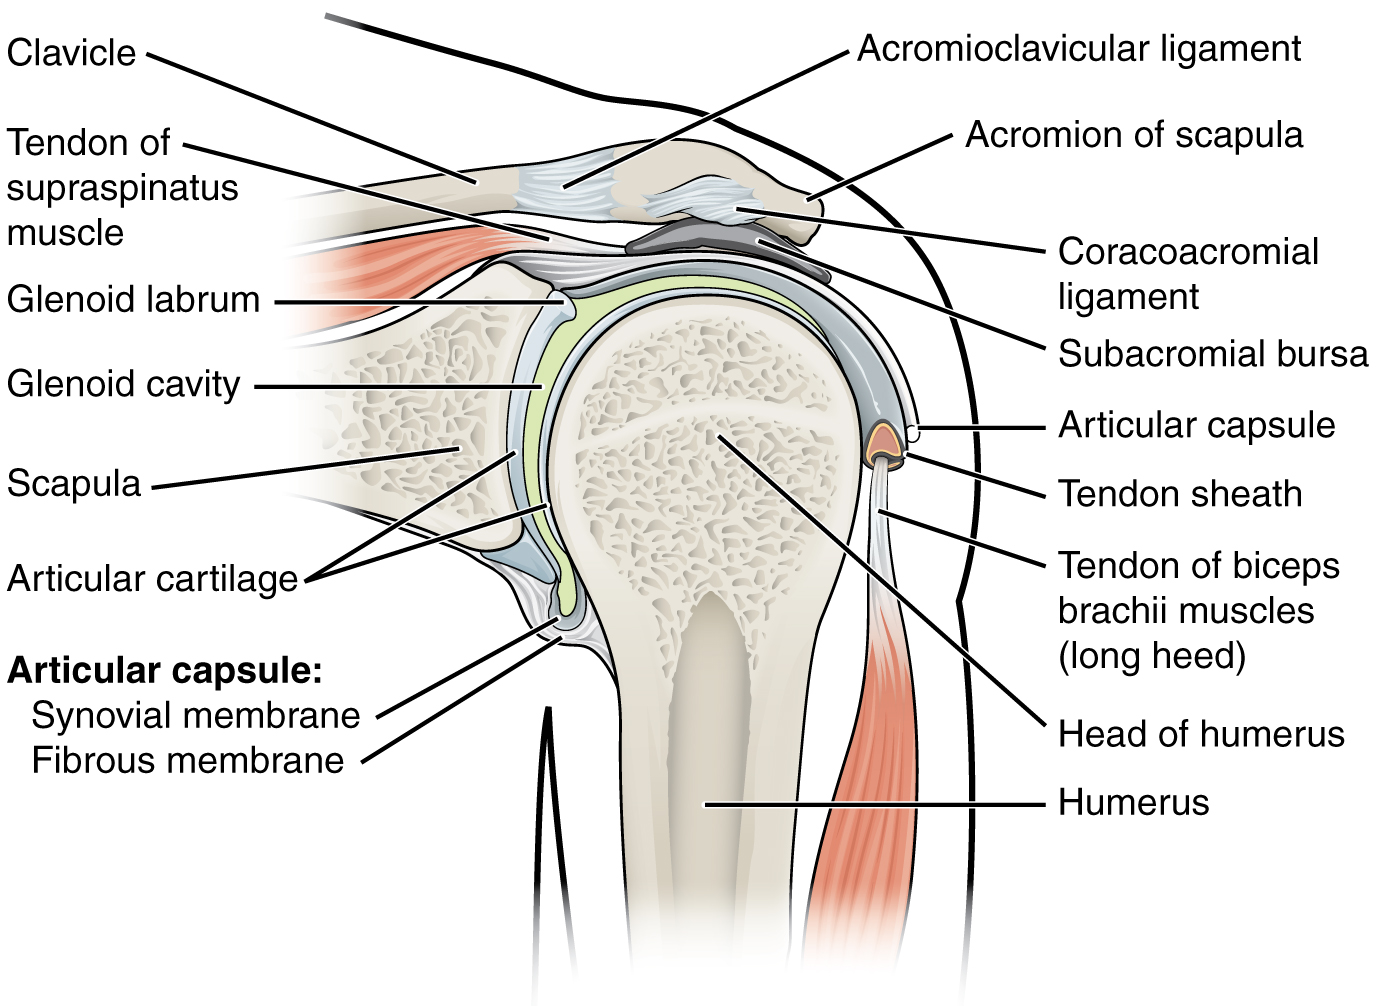 This figure shows the structure of the shoulder joint. The main ligaments and parts are labeled.